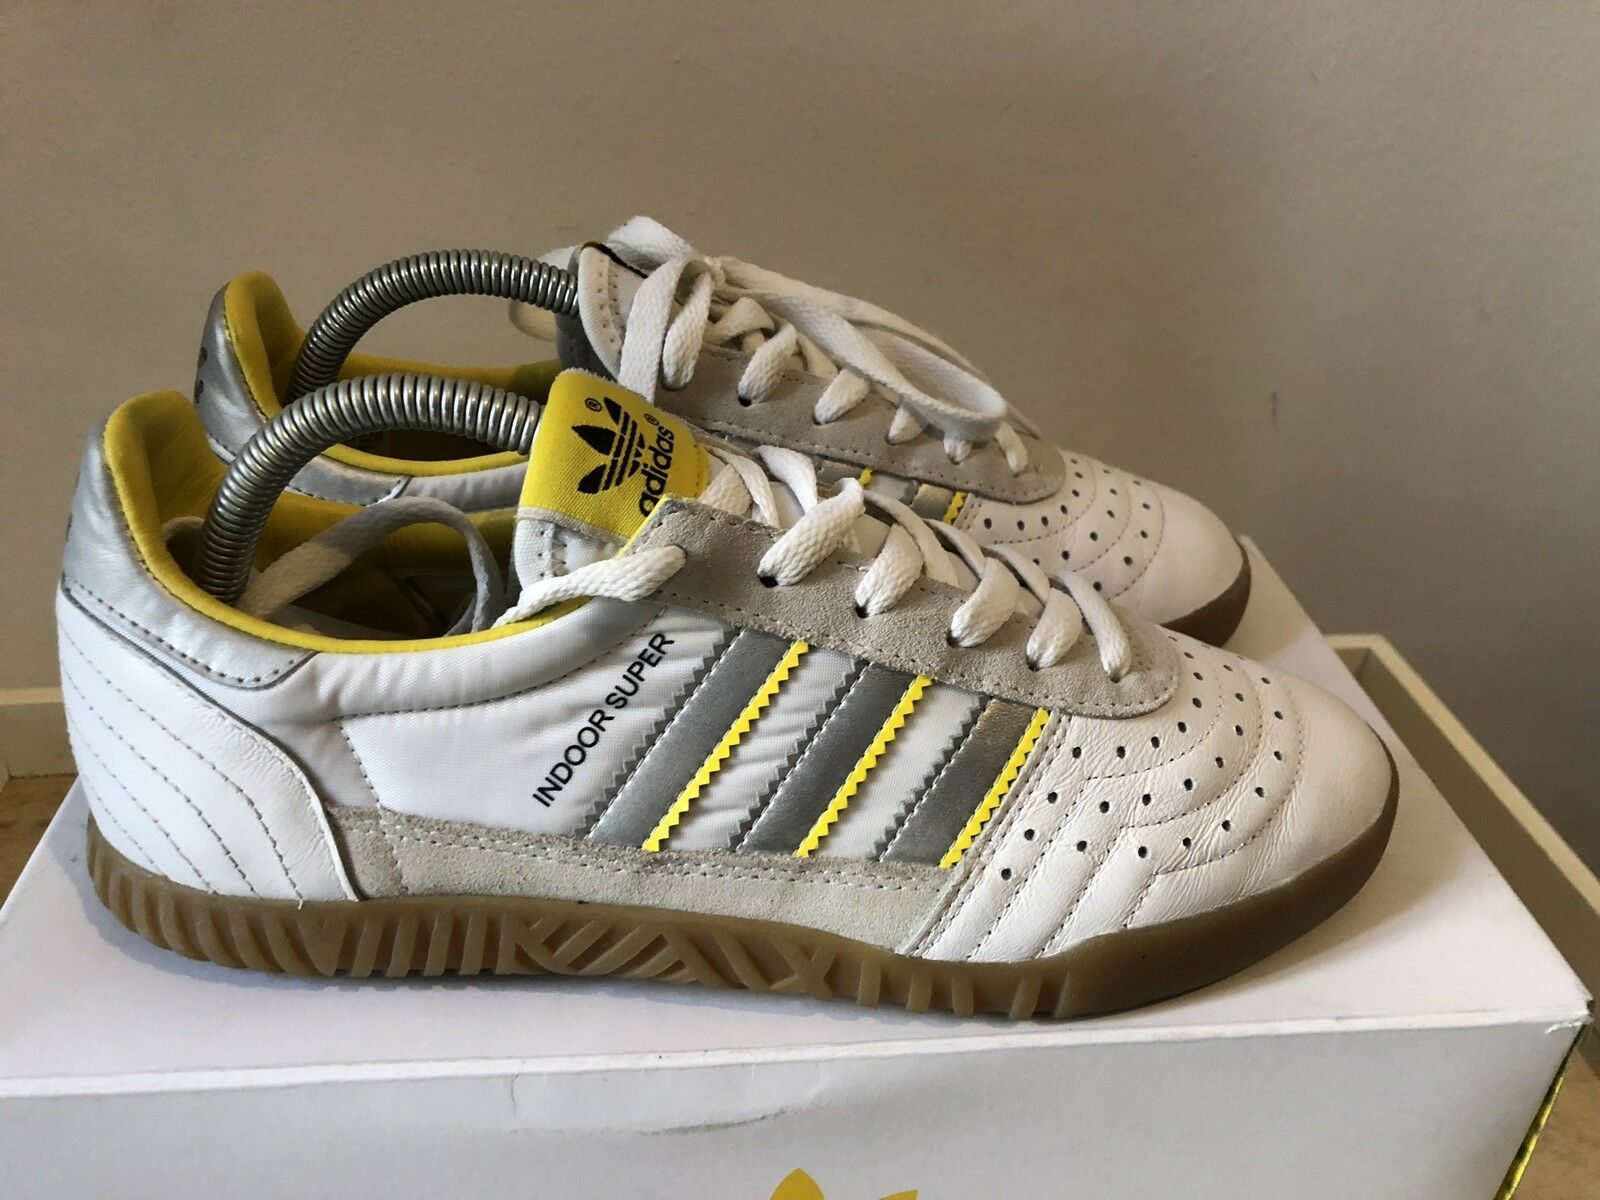 Adidas Casual Dublin Stockholm London 7UK Manchester To